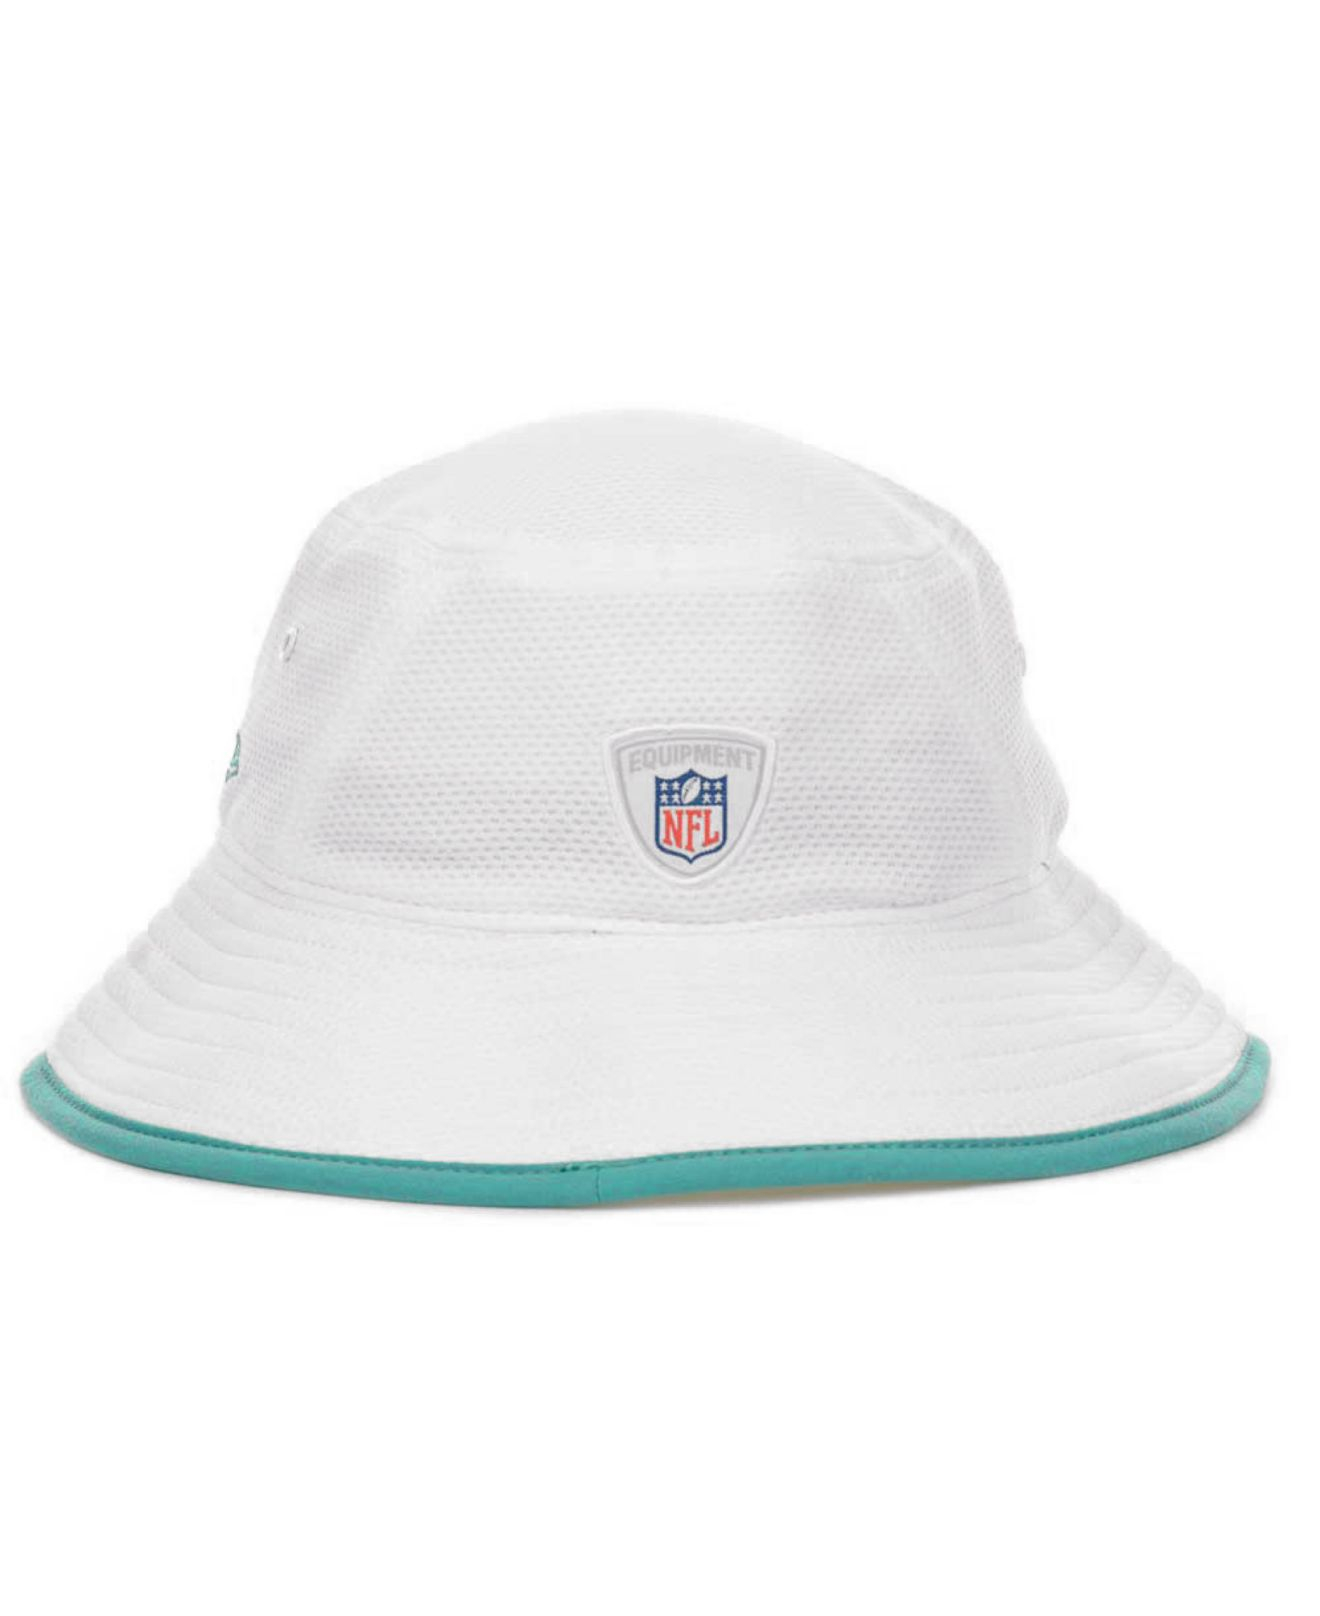 Lyst - KTZ Miami Dolphins Training Camp Bucket Hat in White 886e457156d7